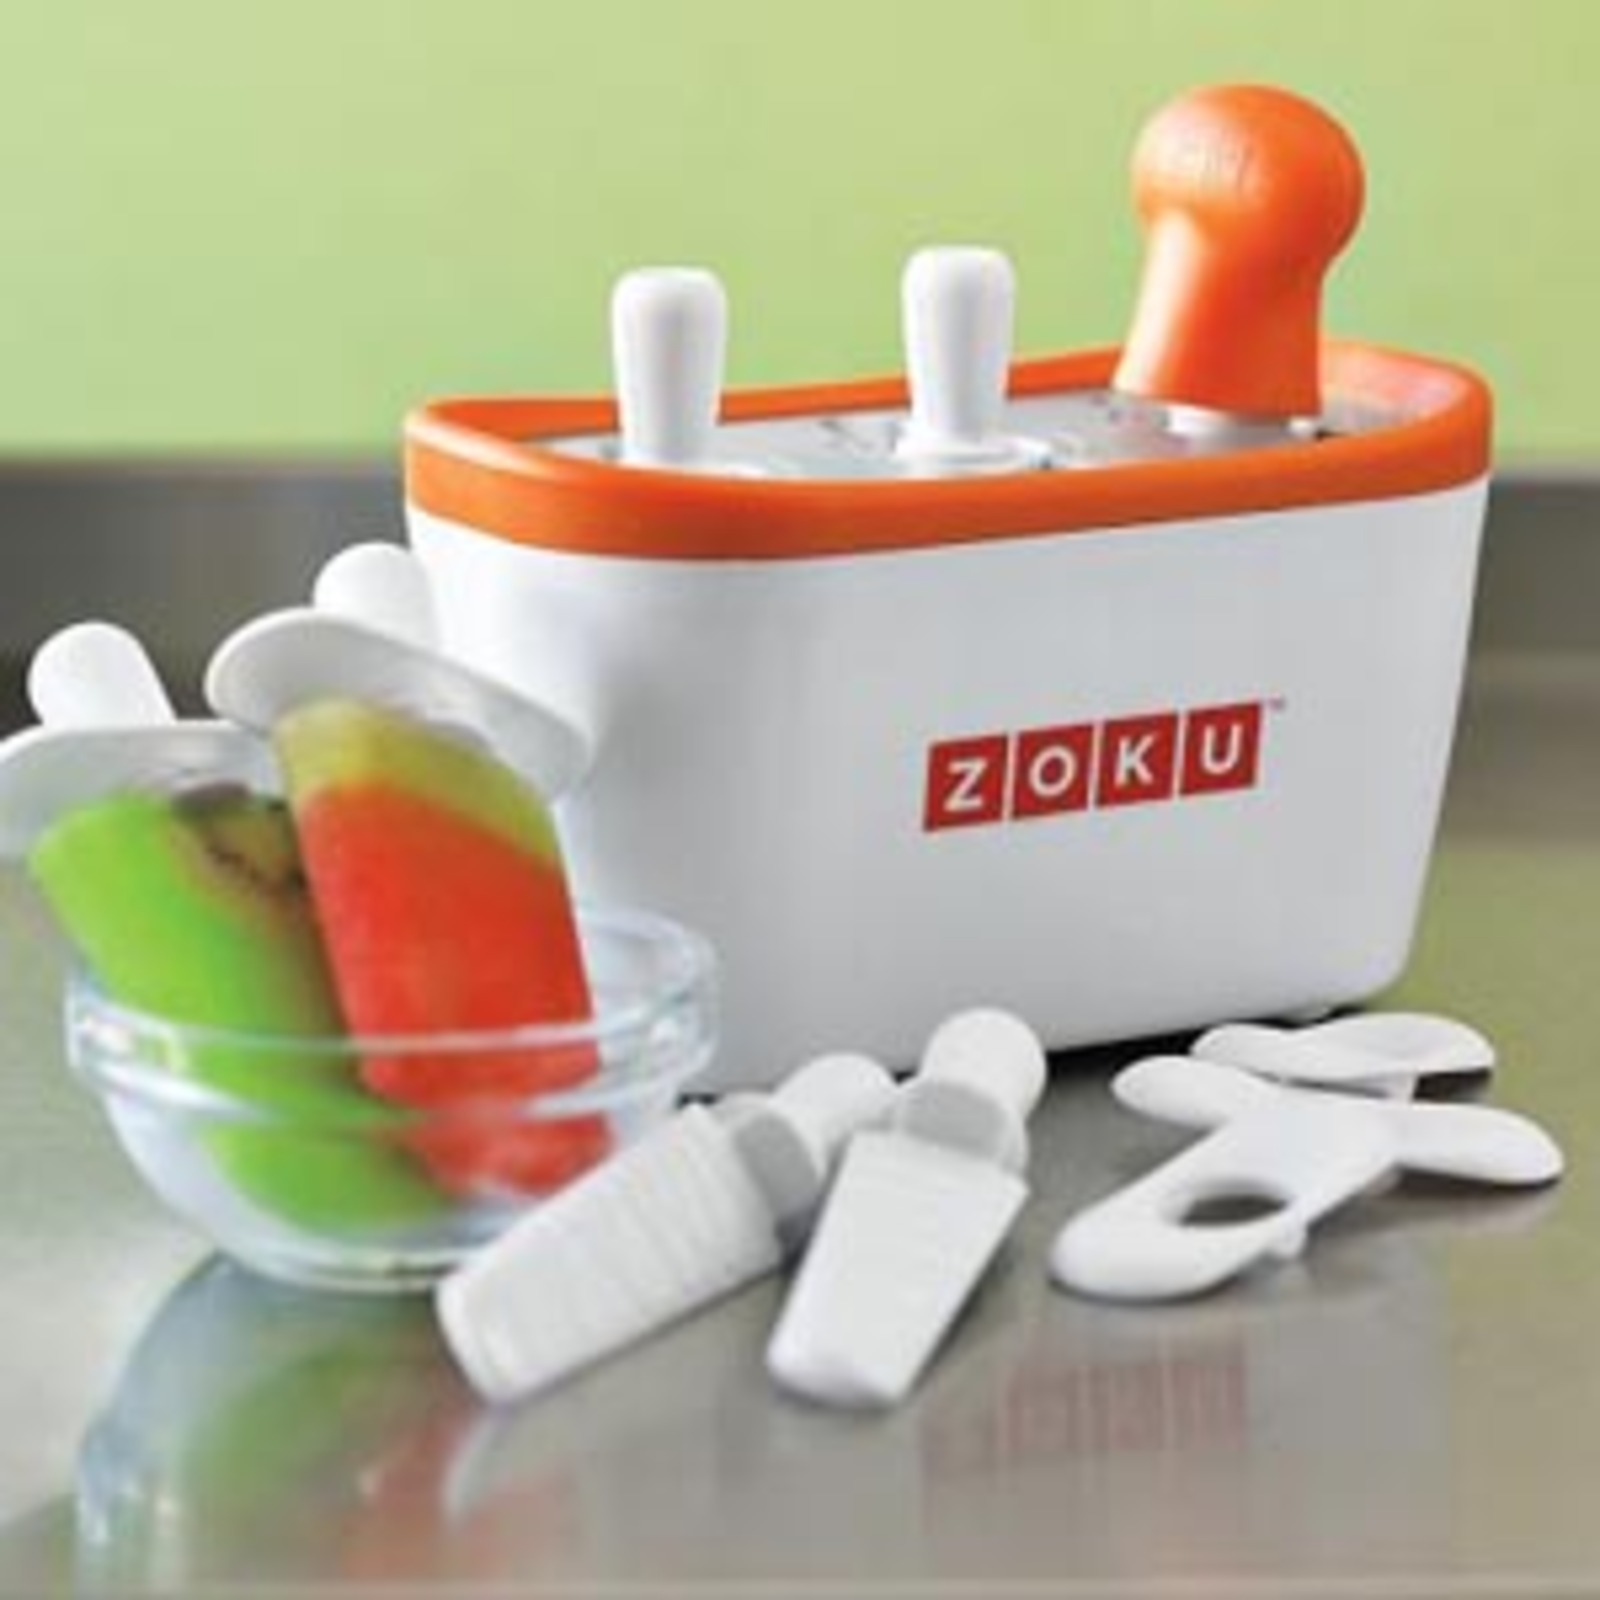 Zoku Quick Pop Maker - Cool Hunting